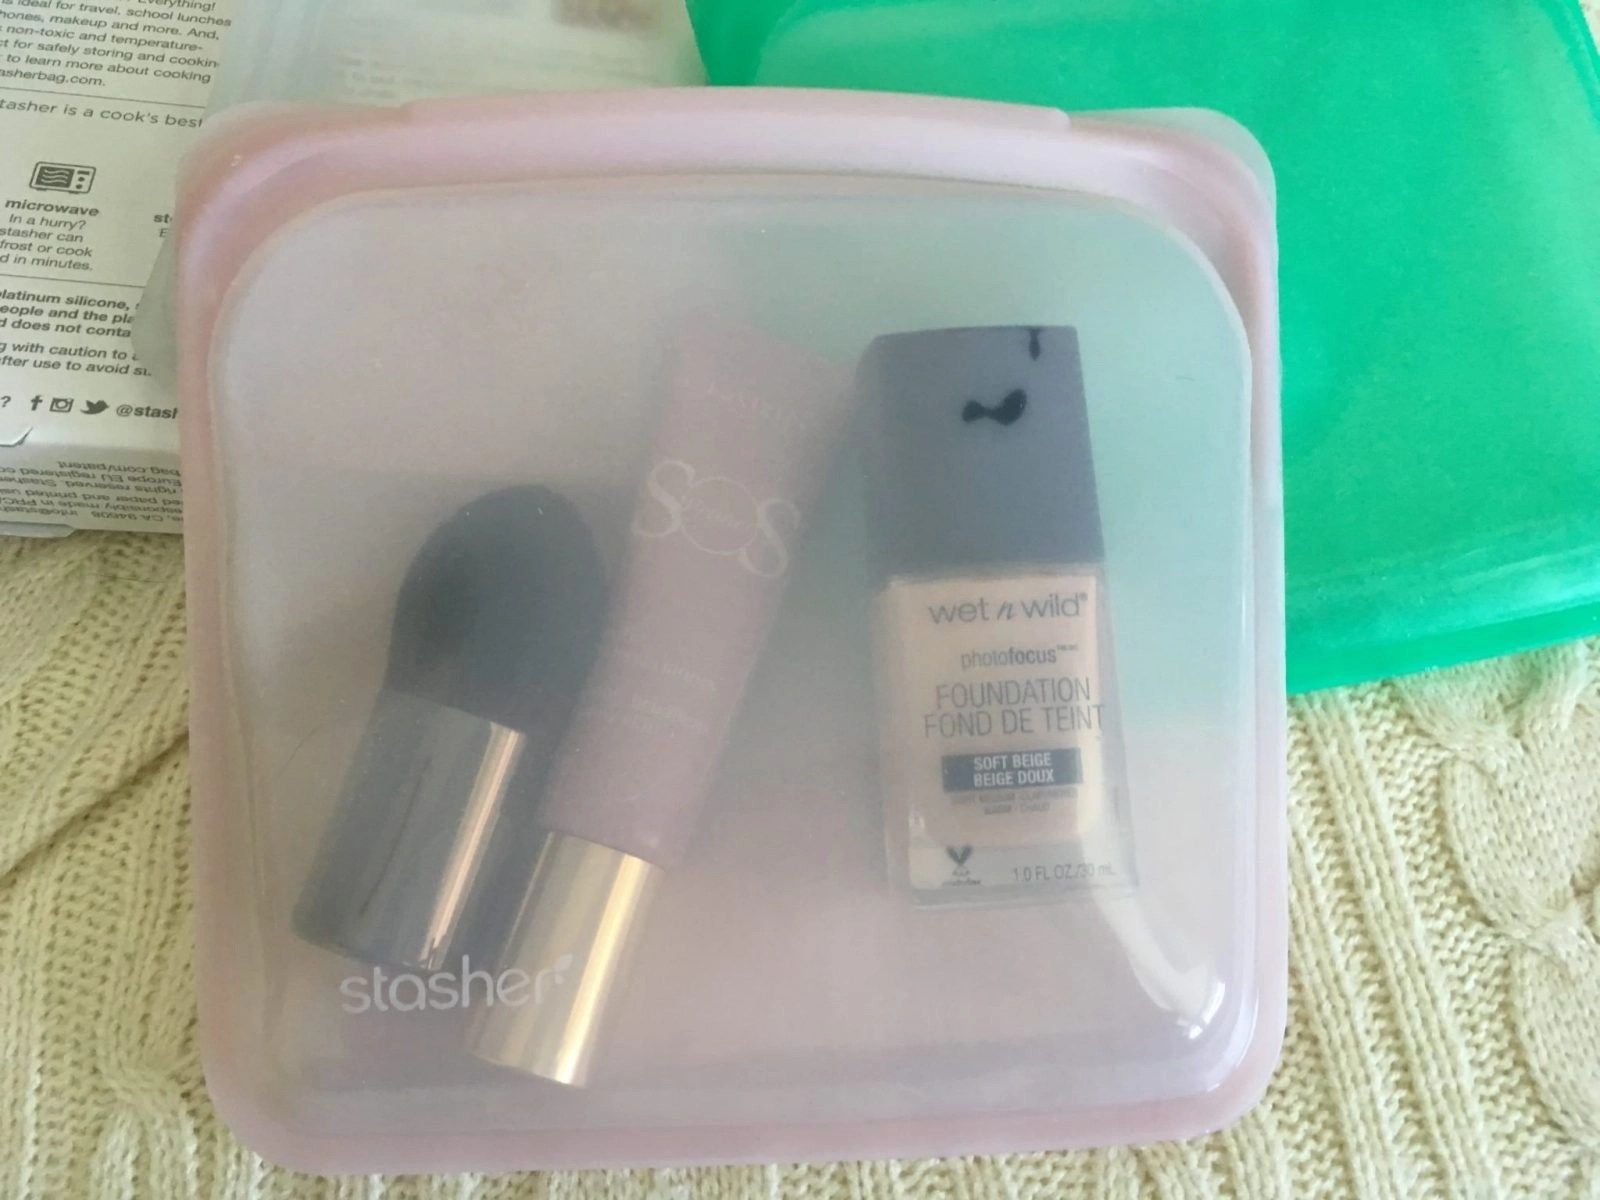 Stasher Reusable Storage Bags with makeup in it